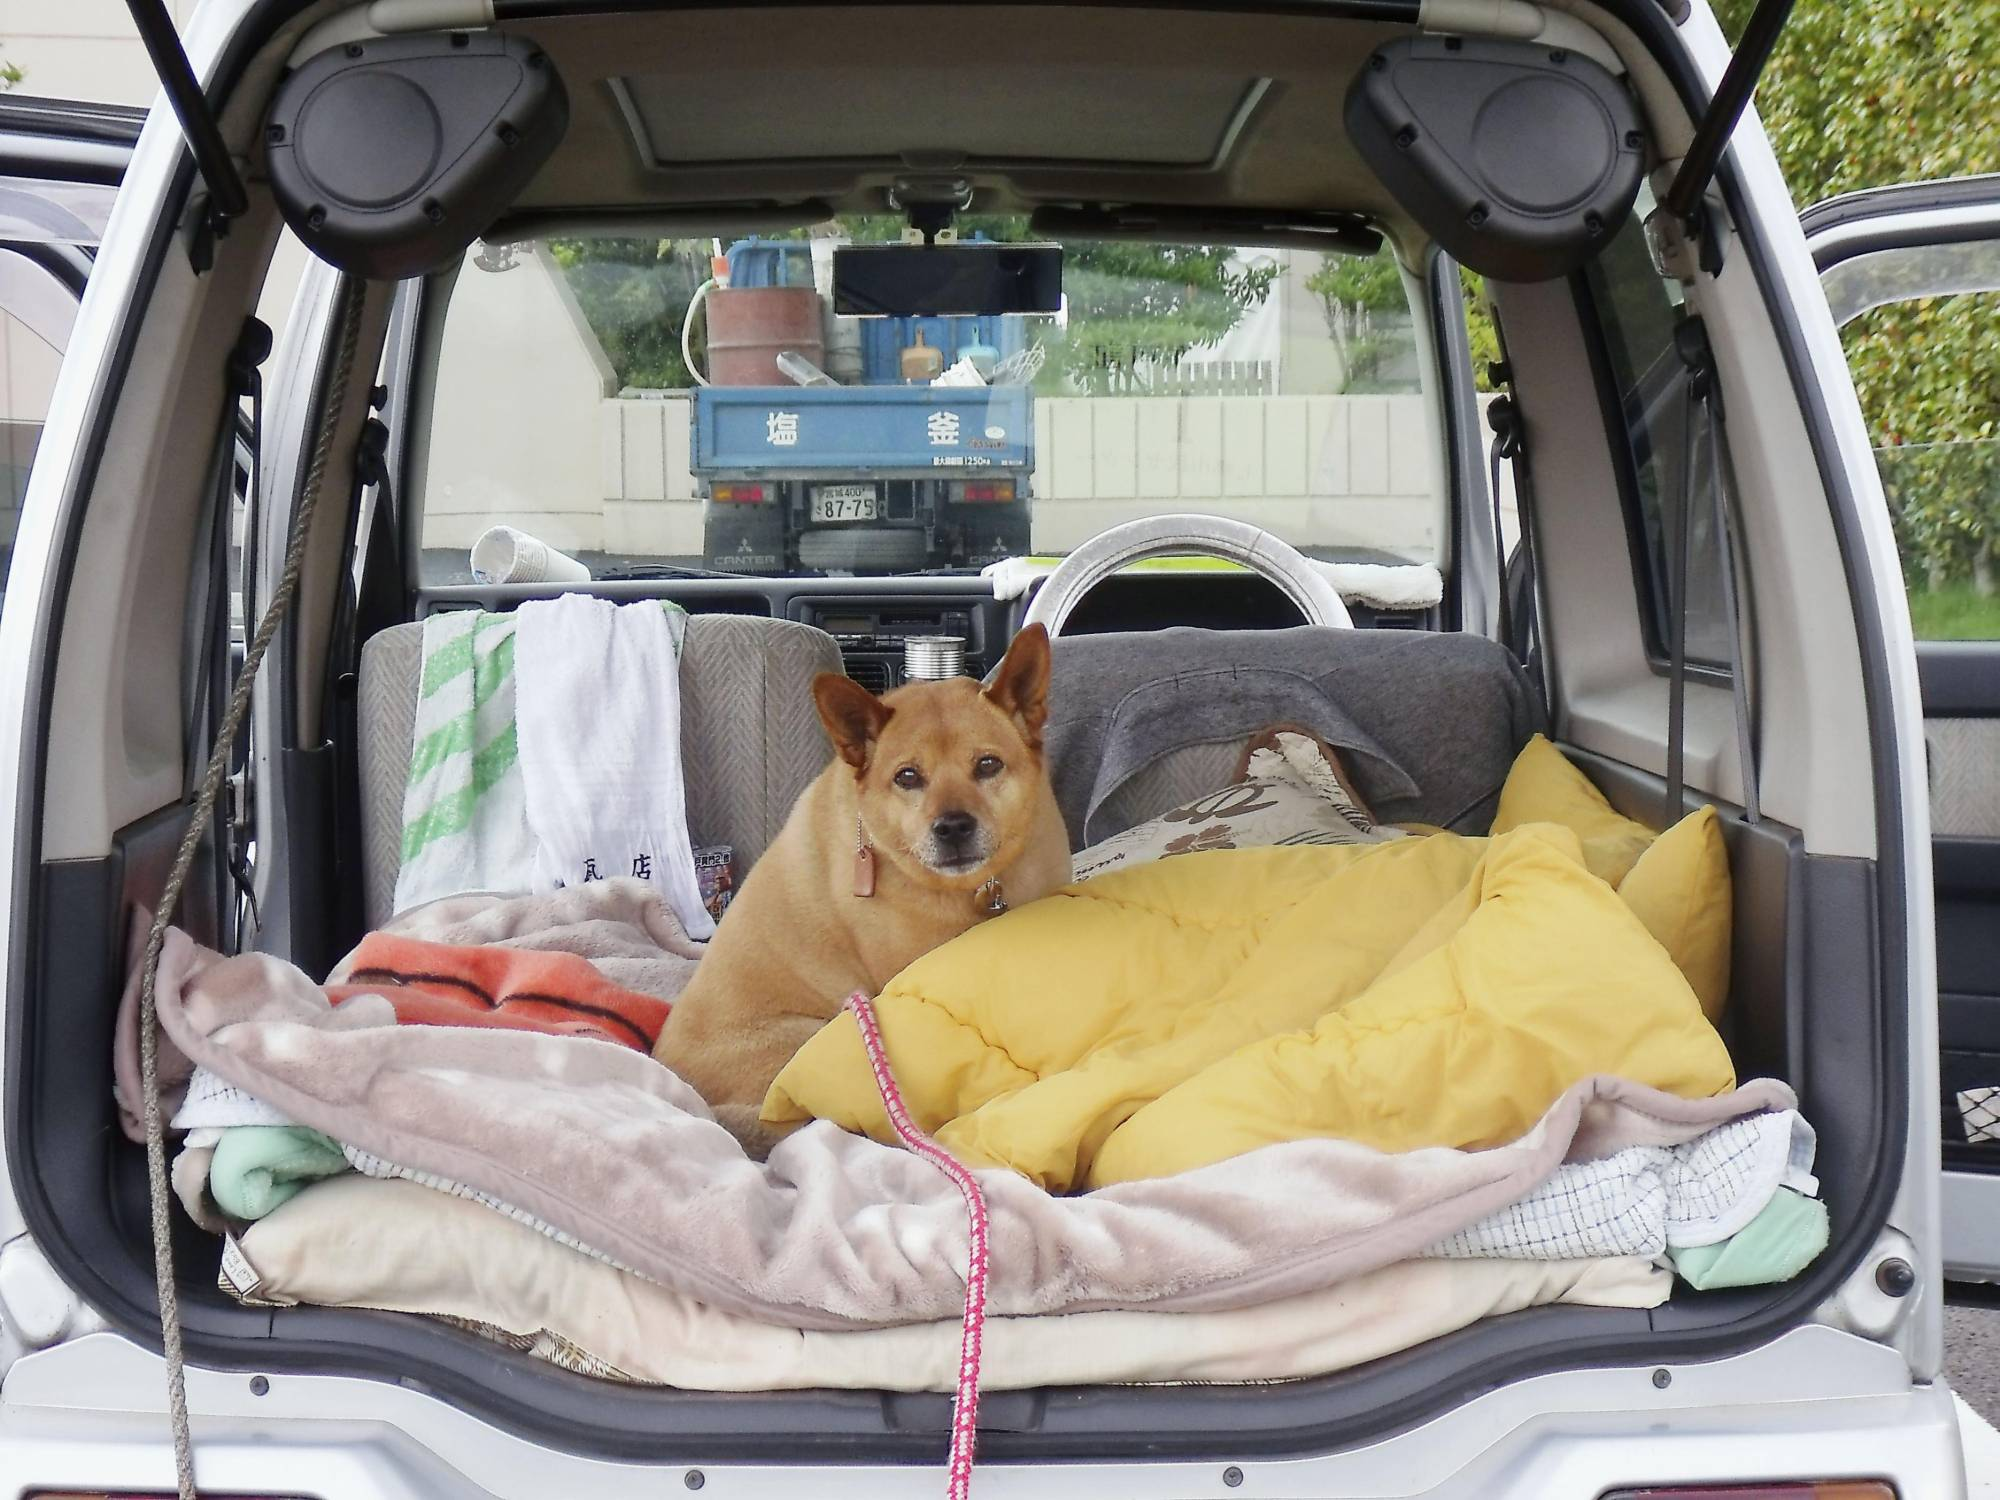 A dog shelters in a car with its owner in Miyagi Prefecture after they evacuated home following the March 2011 quake and tsunami disaster. | COURTESY OF THE SENDAI CITY GOVERNMENT / VIA KYODO